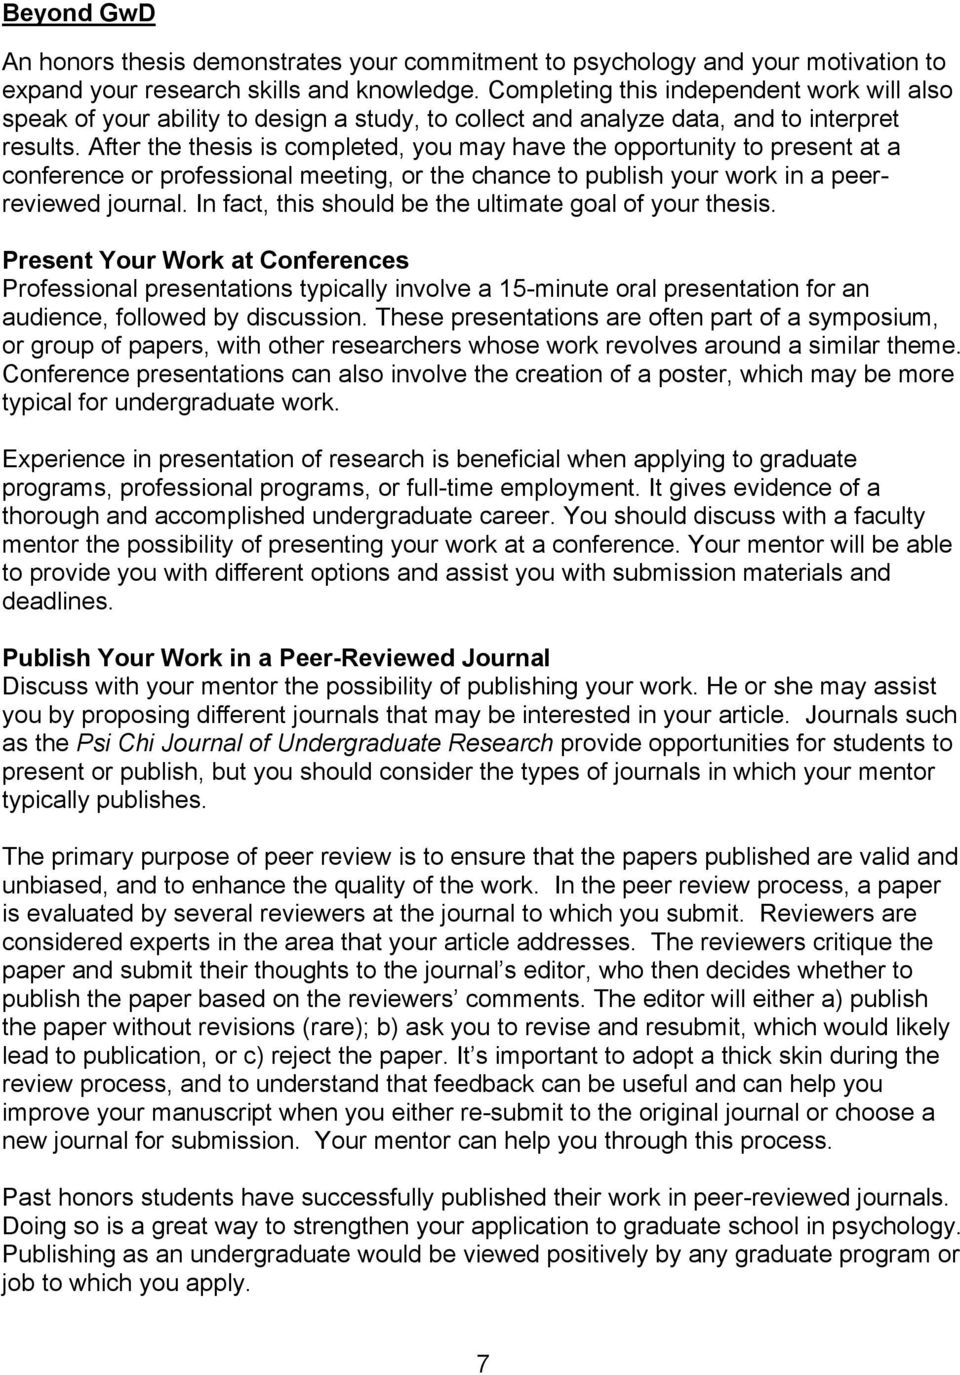 After the thesis is completed, you may have the opportunity to present at a conference or professional meeting, or the chance to publish your work in a peerreviewed journal.